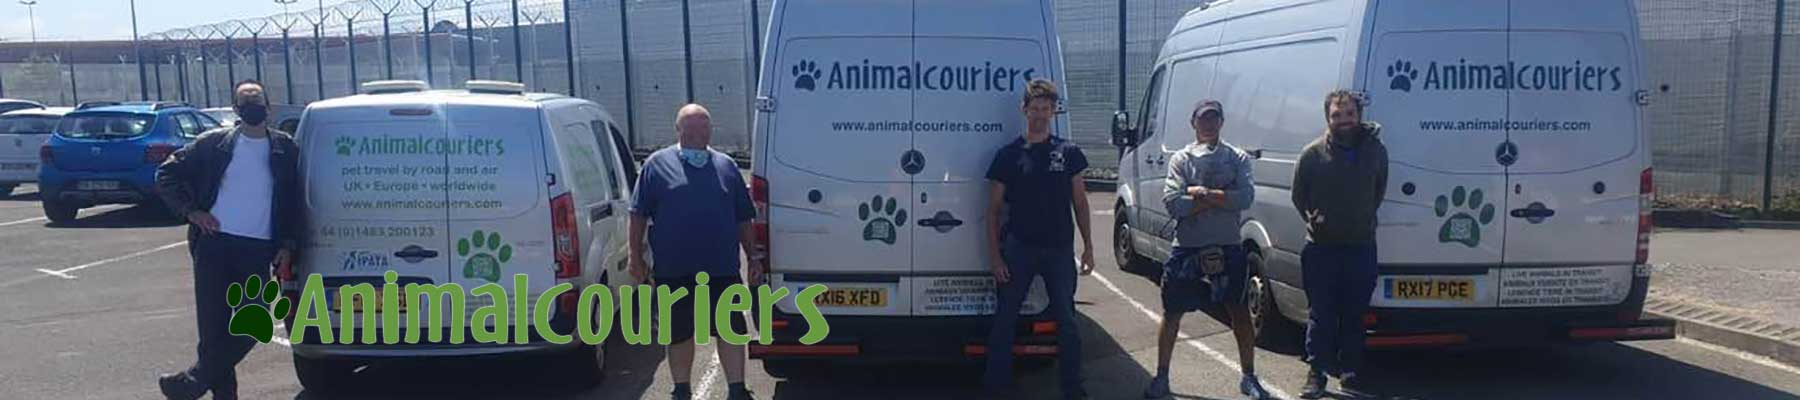 Animalcouriers couriers